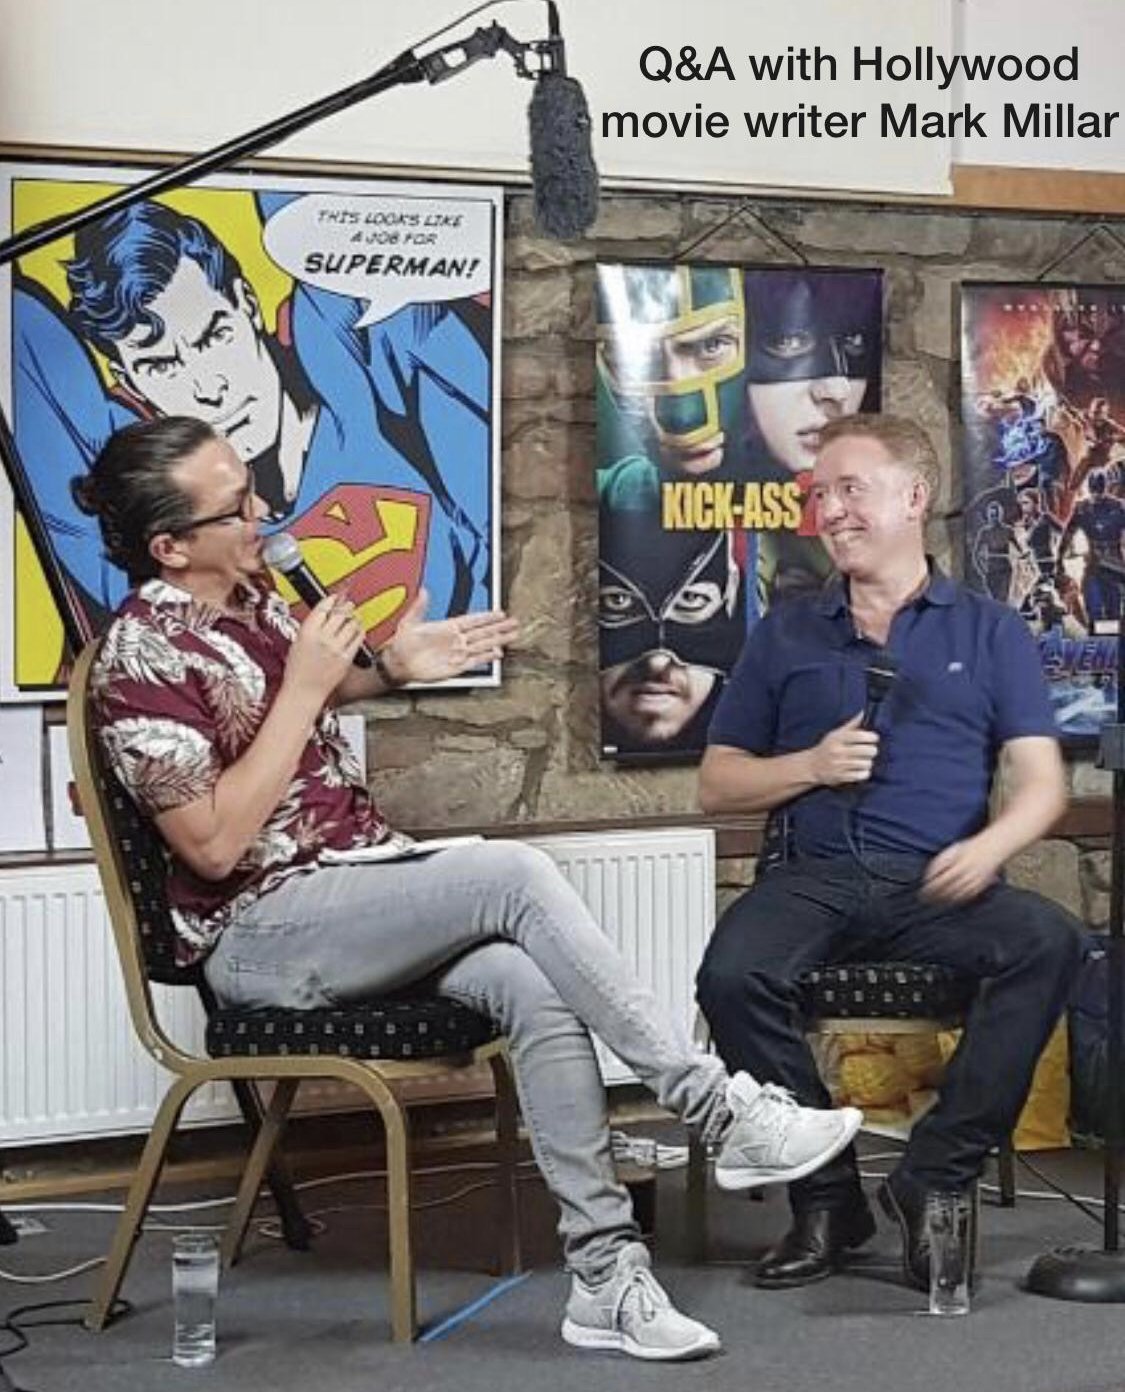 Q&A with Hollywood's Mark Millar